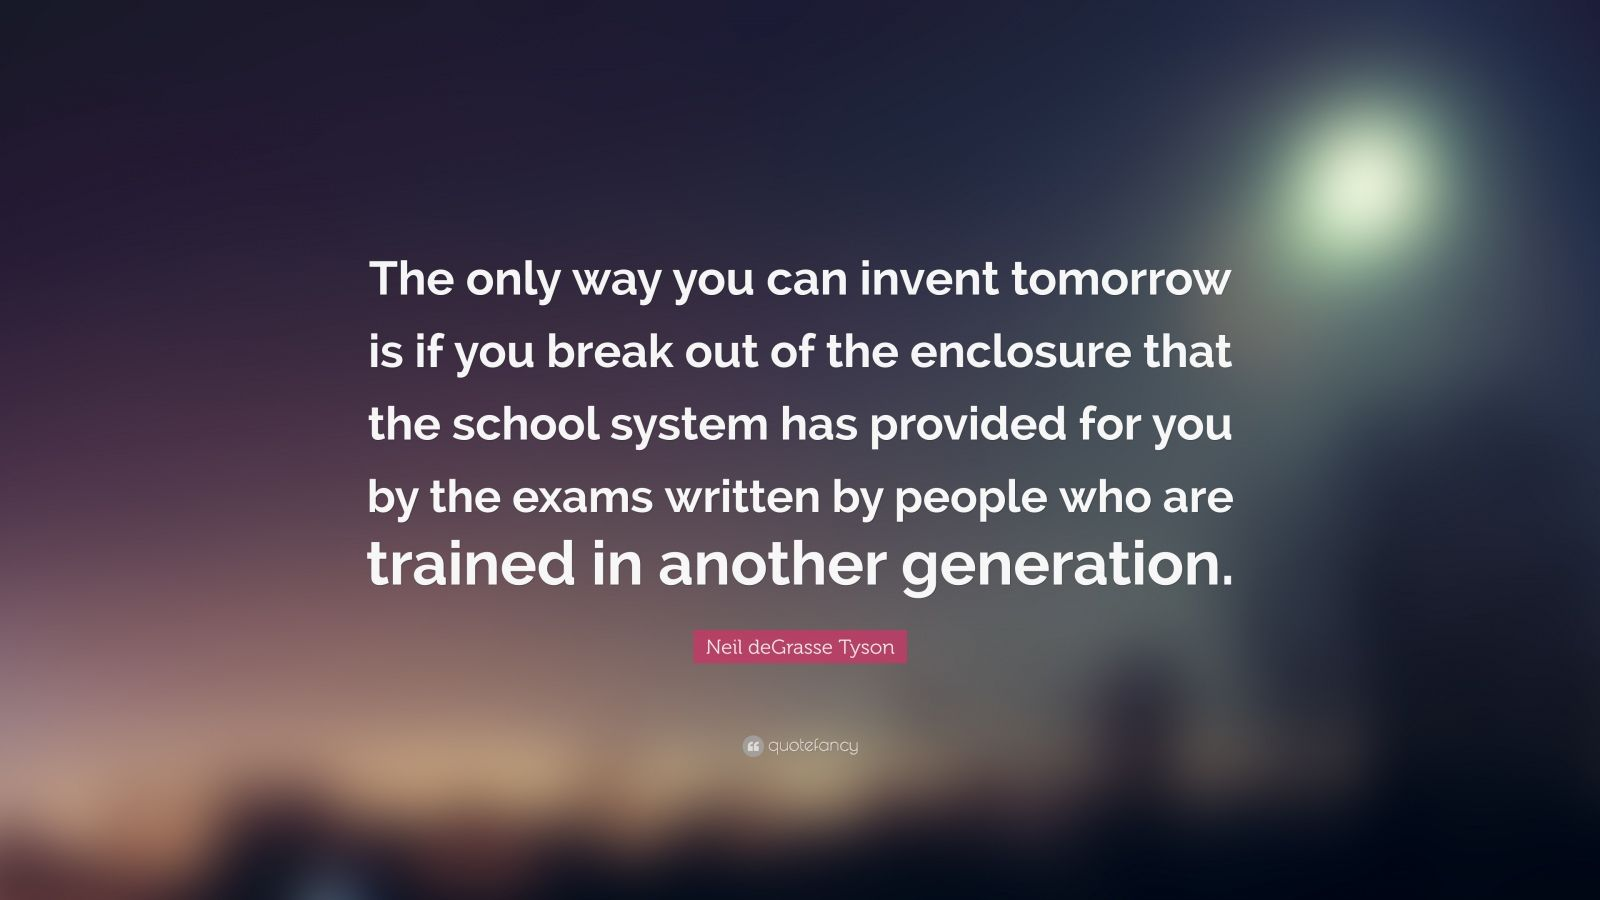 """Neil deGrasse Tyson Quote: """"The only way you can invent tomorrow is if you break out of the enclosure that the school system has provided for you by the exams written by people who are trained in another generation."""""""